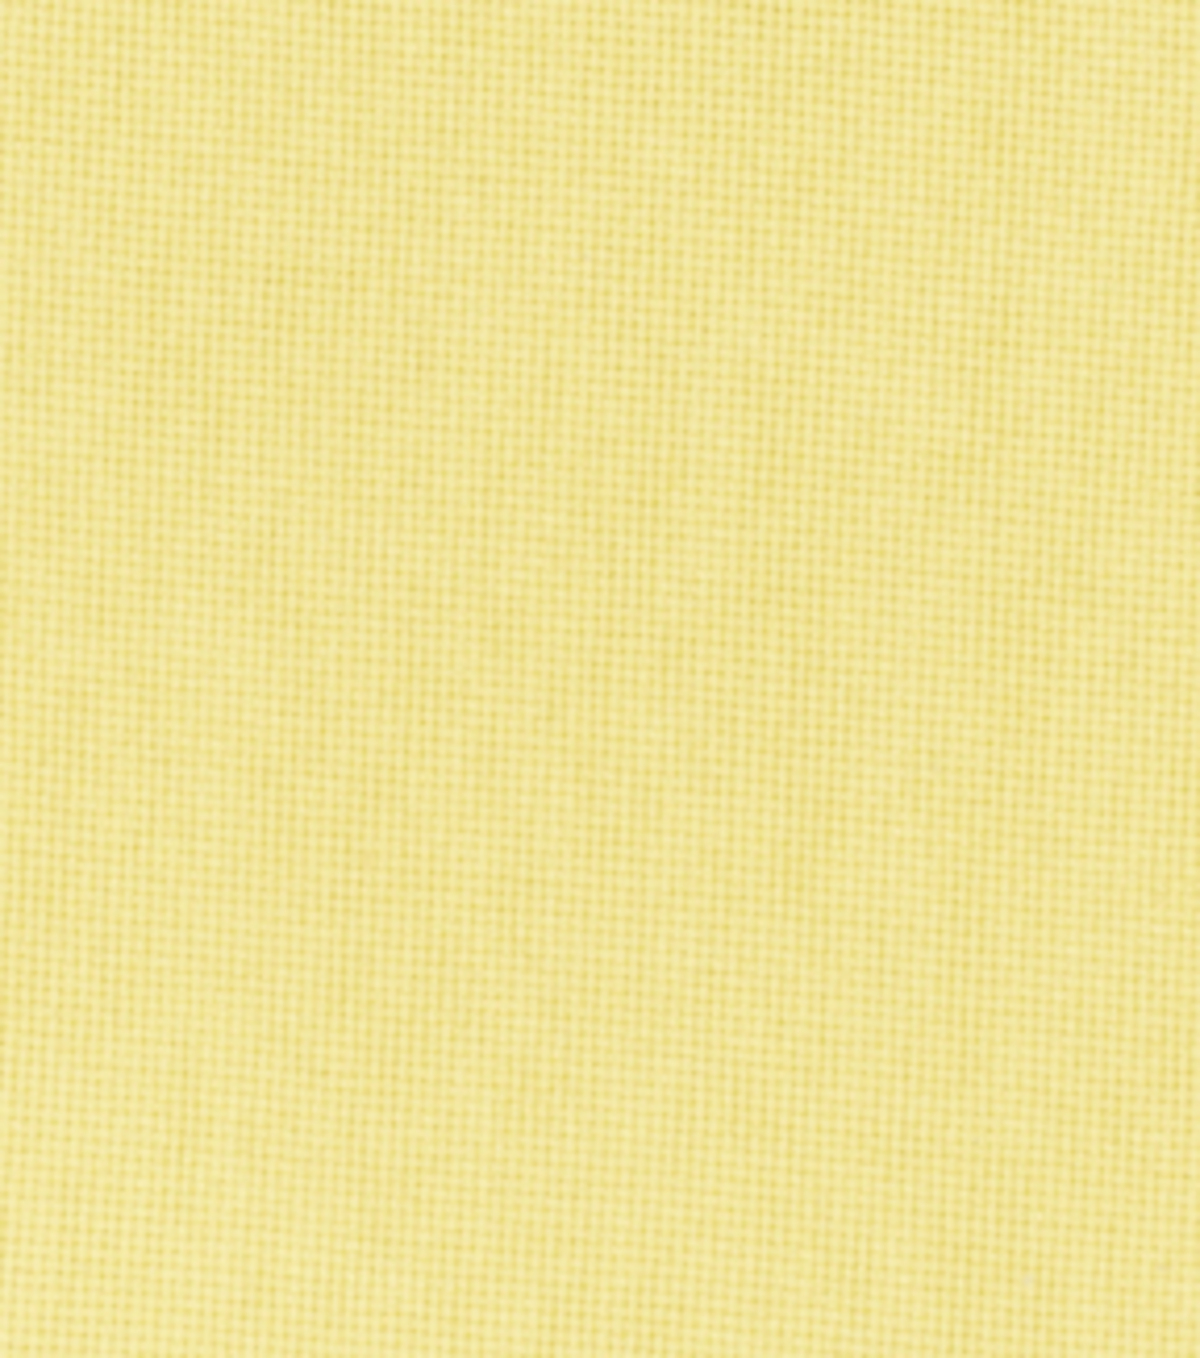 Home Decor 8\u0022x8\u0022 Fabric Swatch-Eaton Square Pitta Sun